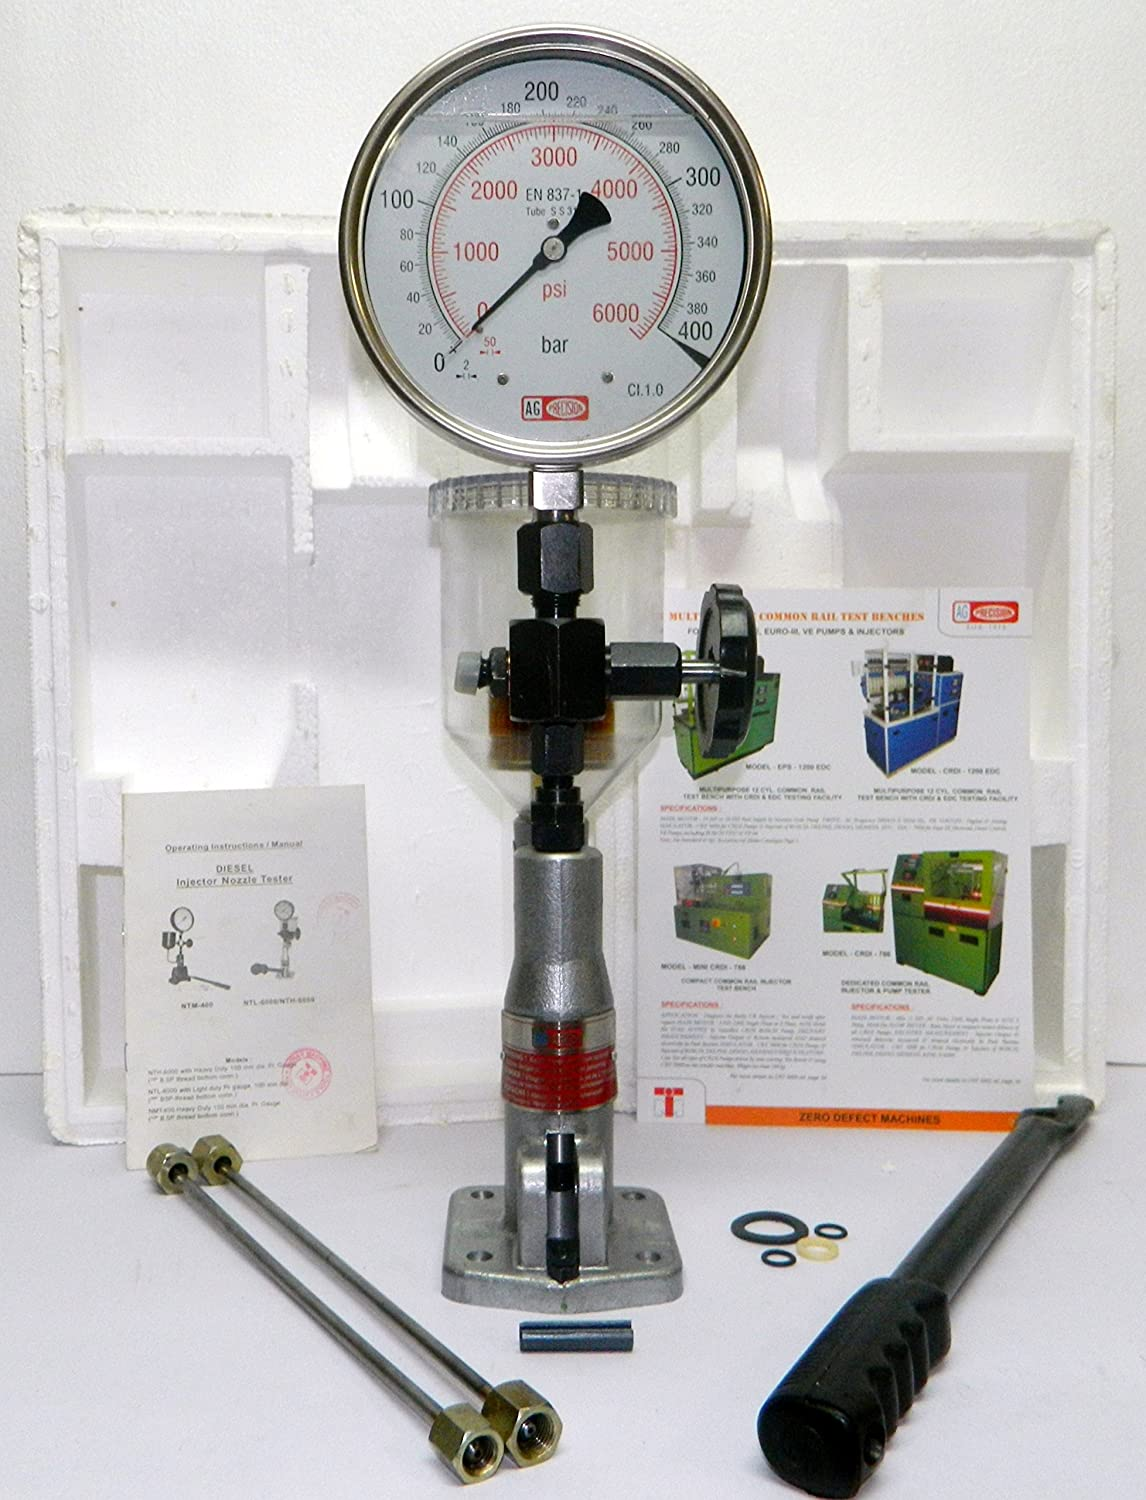 Diesel Injector Nozzle Pop Tester with Glycerin Filled, Heavy Duty, 400 BAR & PSI Dual Scale Gauge Indian Machine Tools